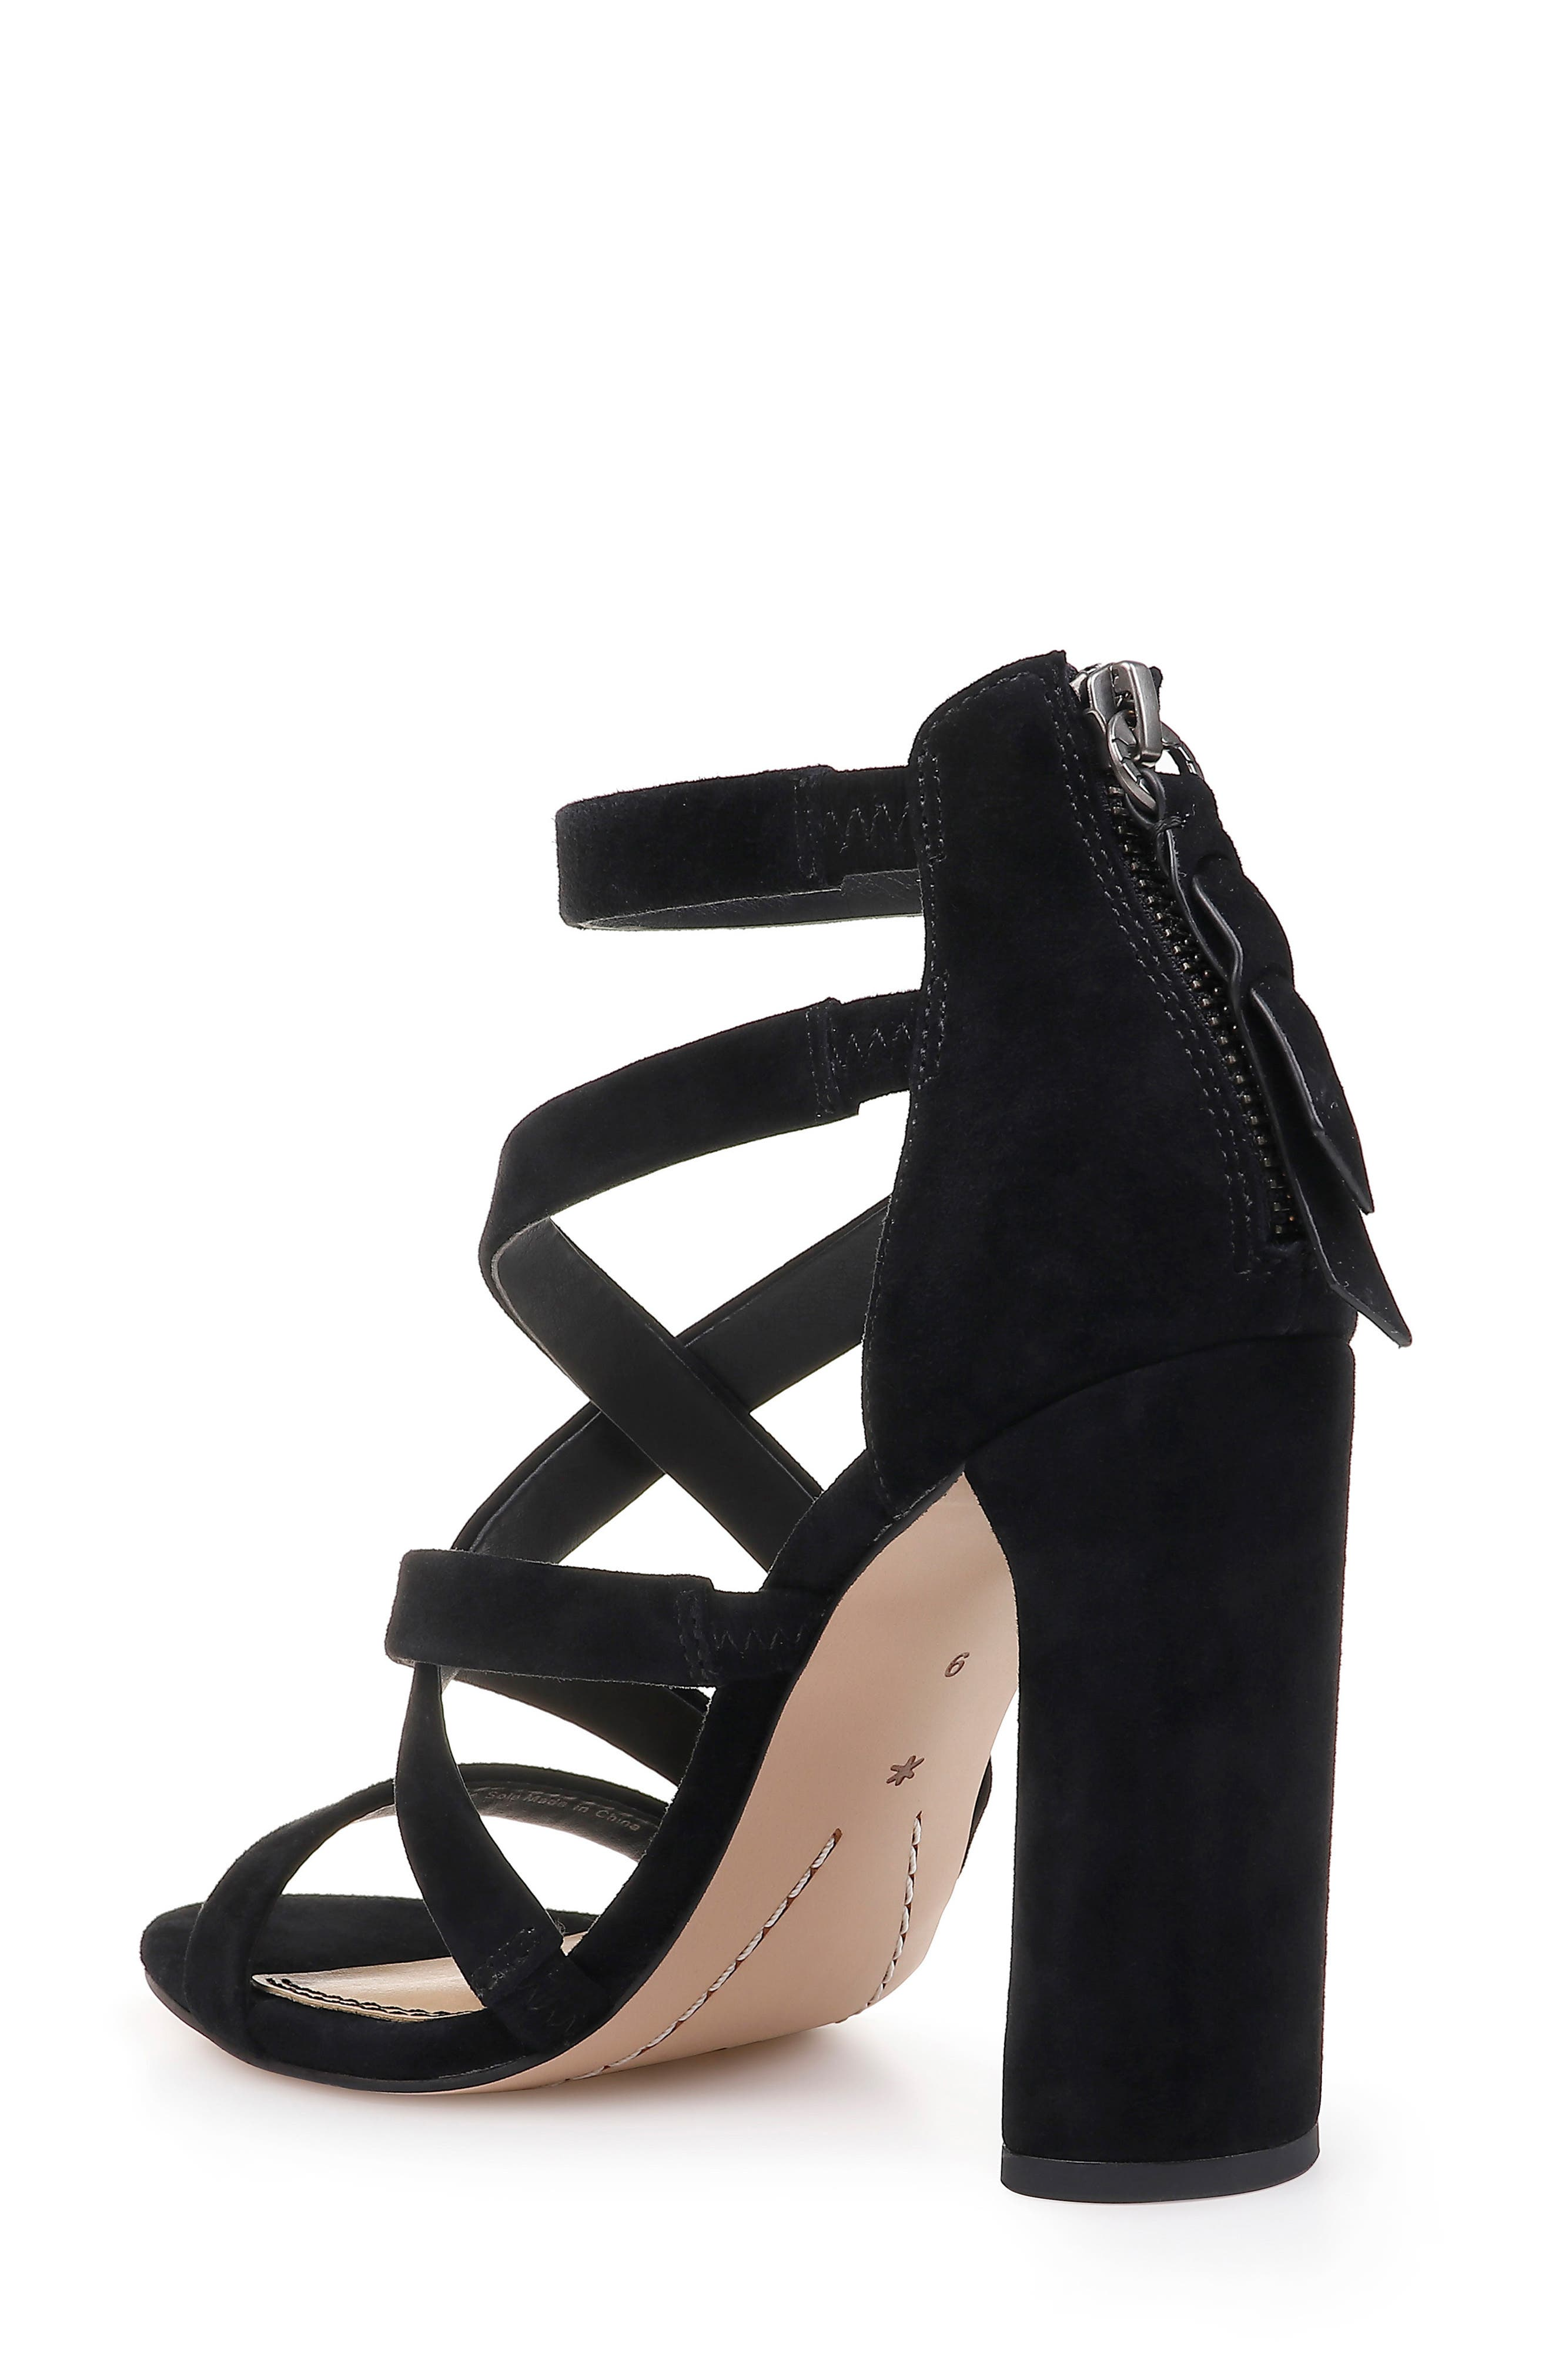 Stuart Block Heel Sandal,                             Alternate thumbnail 2, color,                             BLACK SUEDE